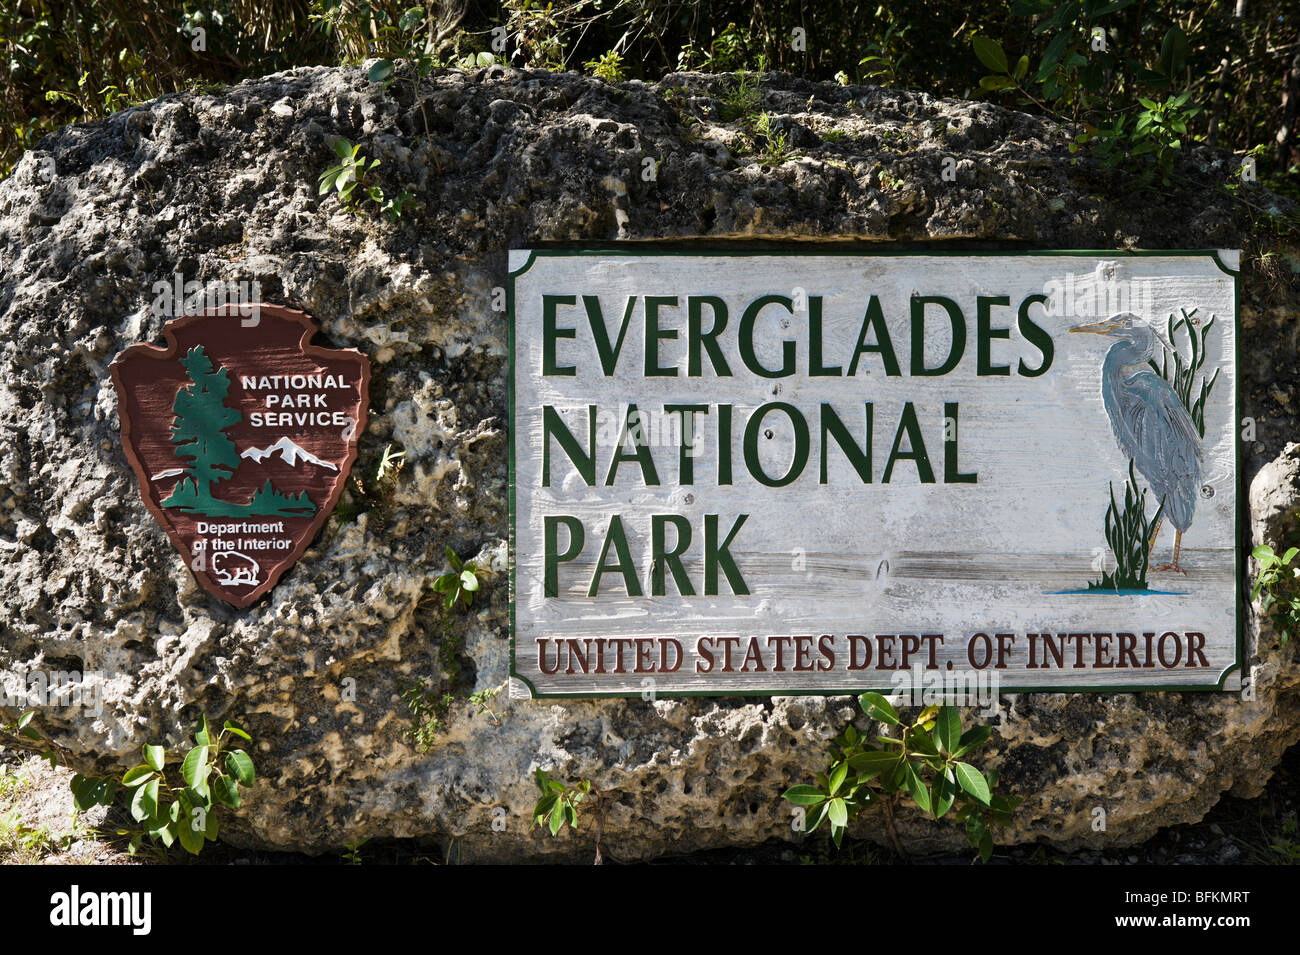 Image result for everglades national park fort lauderdale